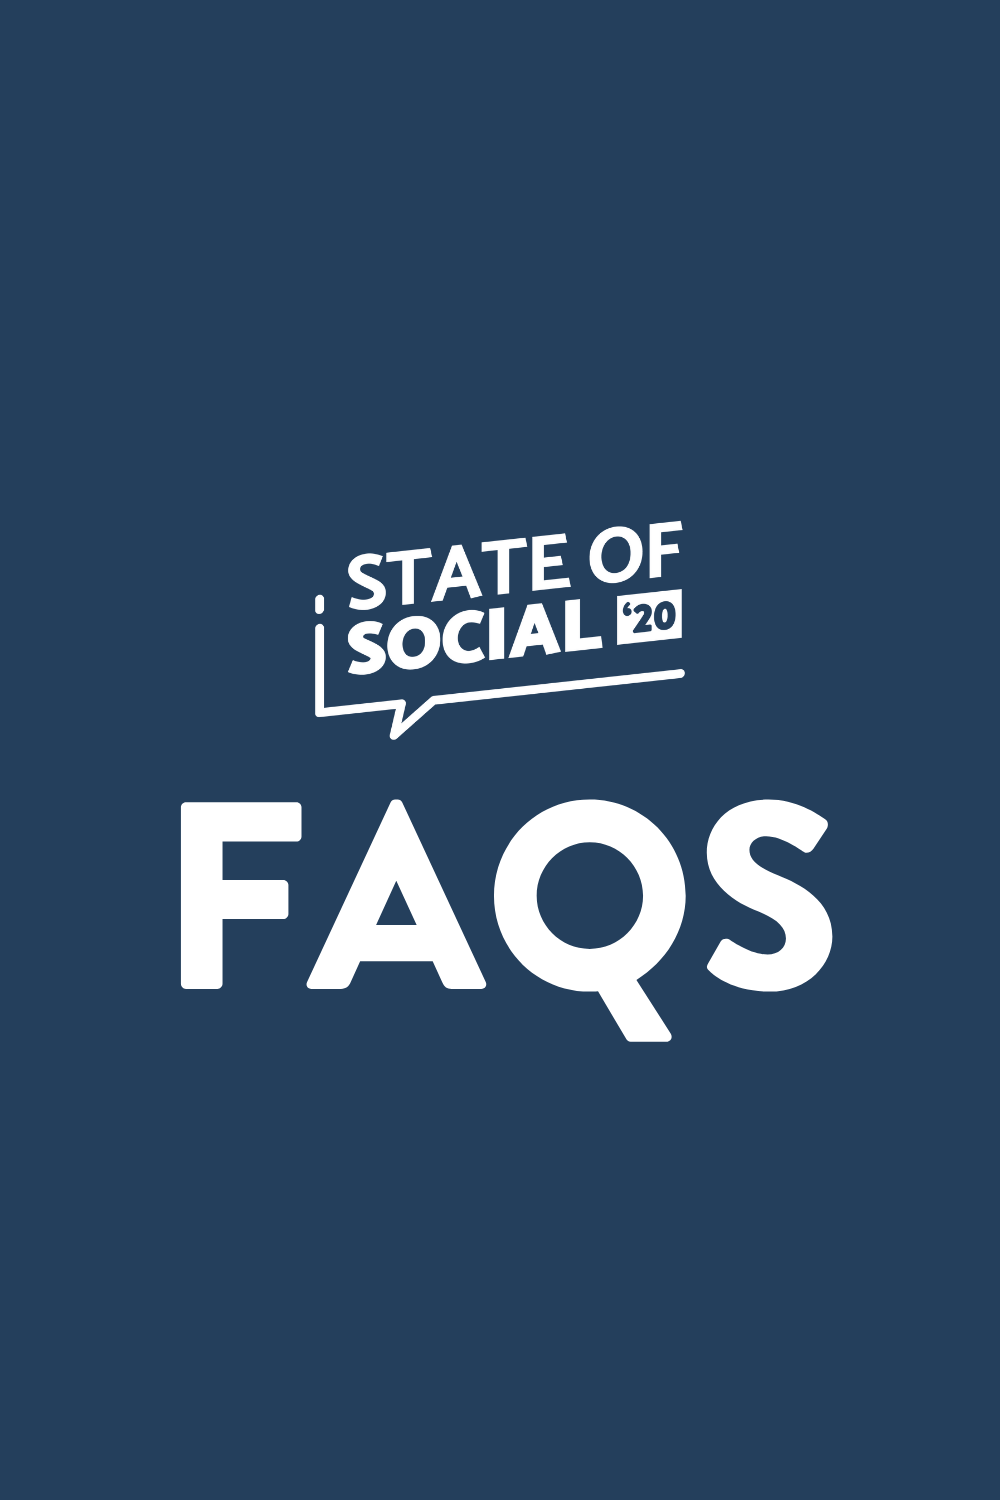 Curious to learn more about #StateofSocial20? Click here to read answers to all our frequently asked questions from coat check to the food supplied »